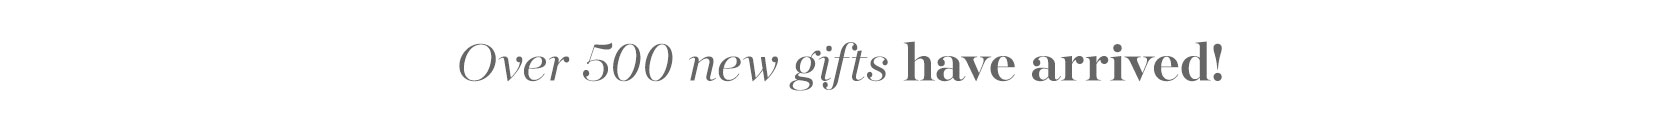 Over 500 new gifts have arrived!